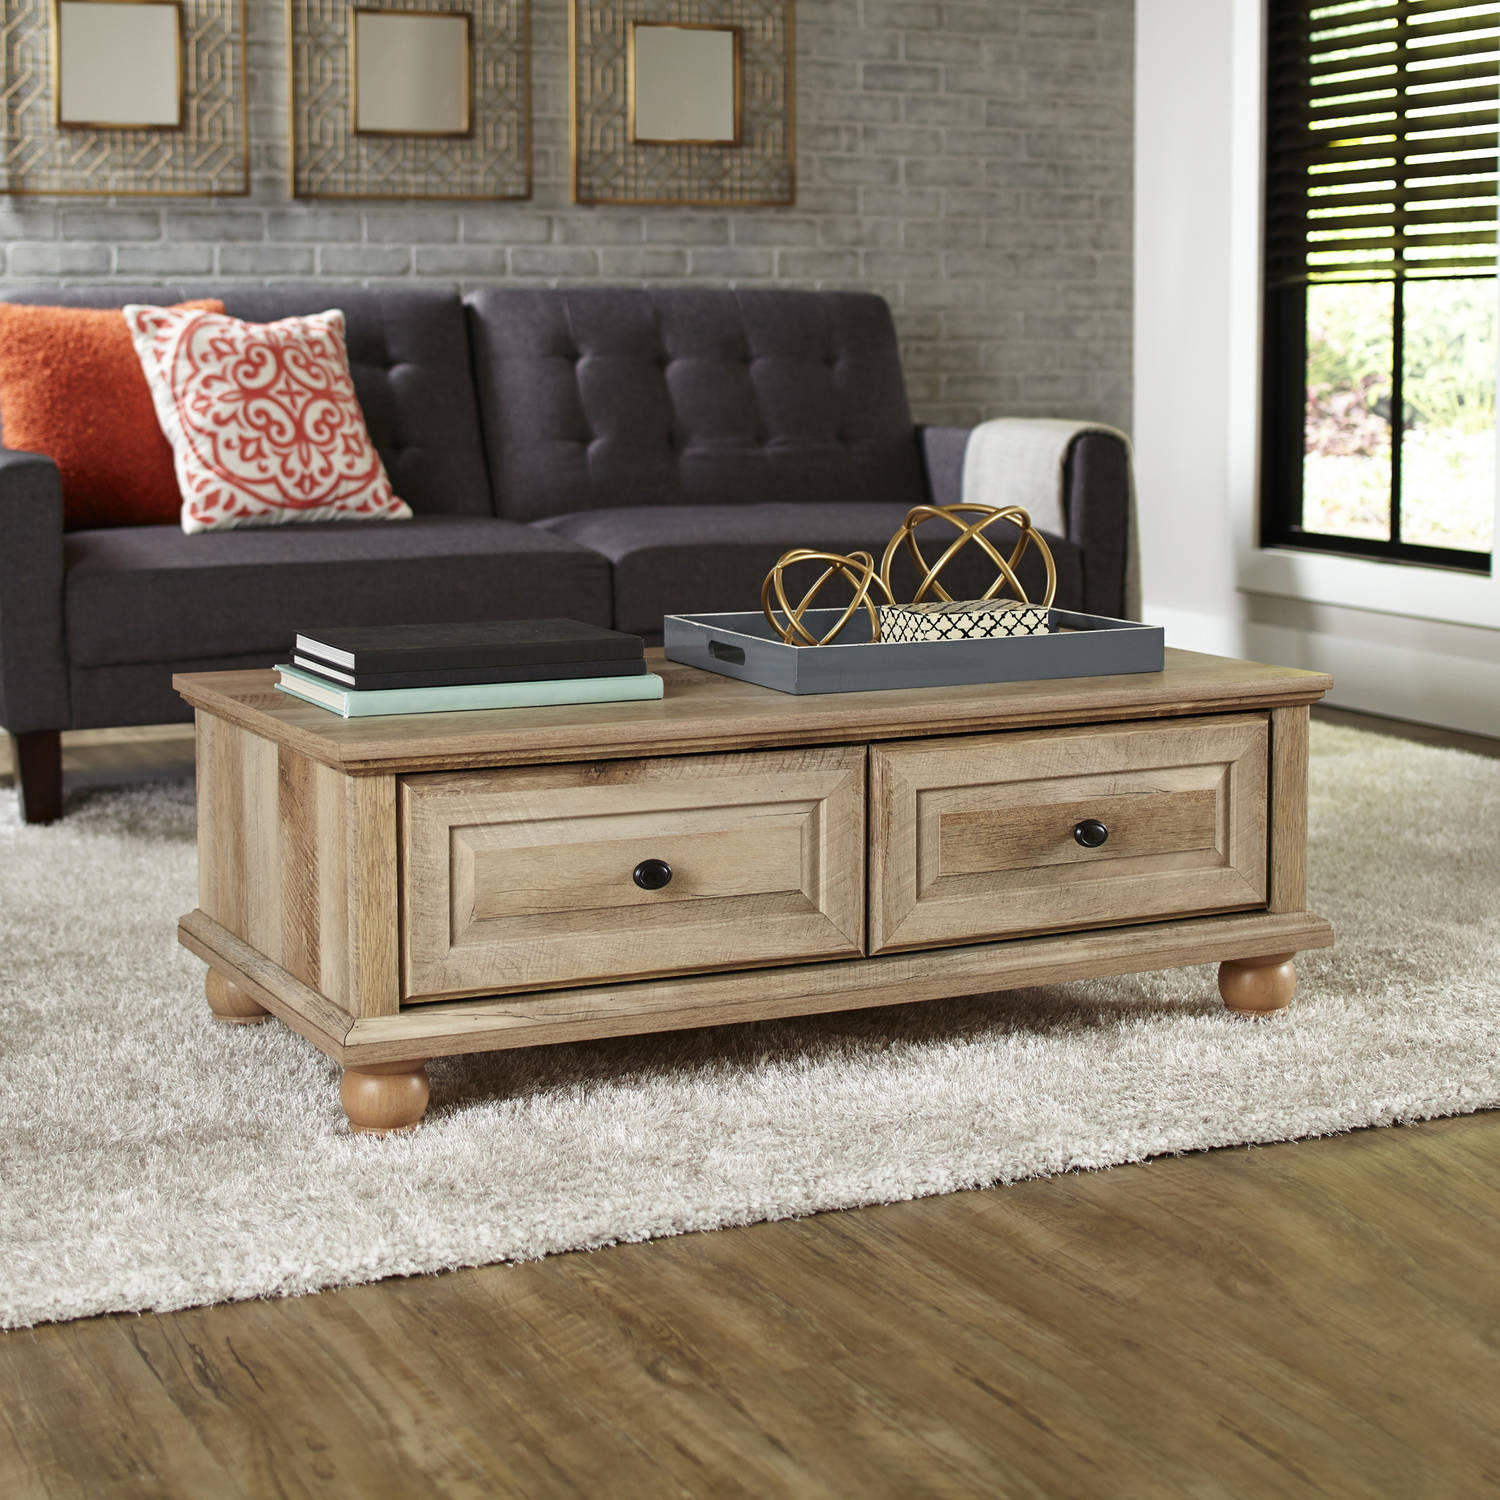 Master Living Room Furniture | Walmart.com living room table sets